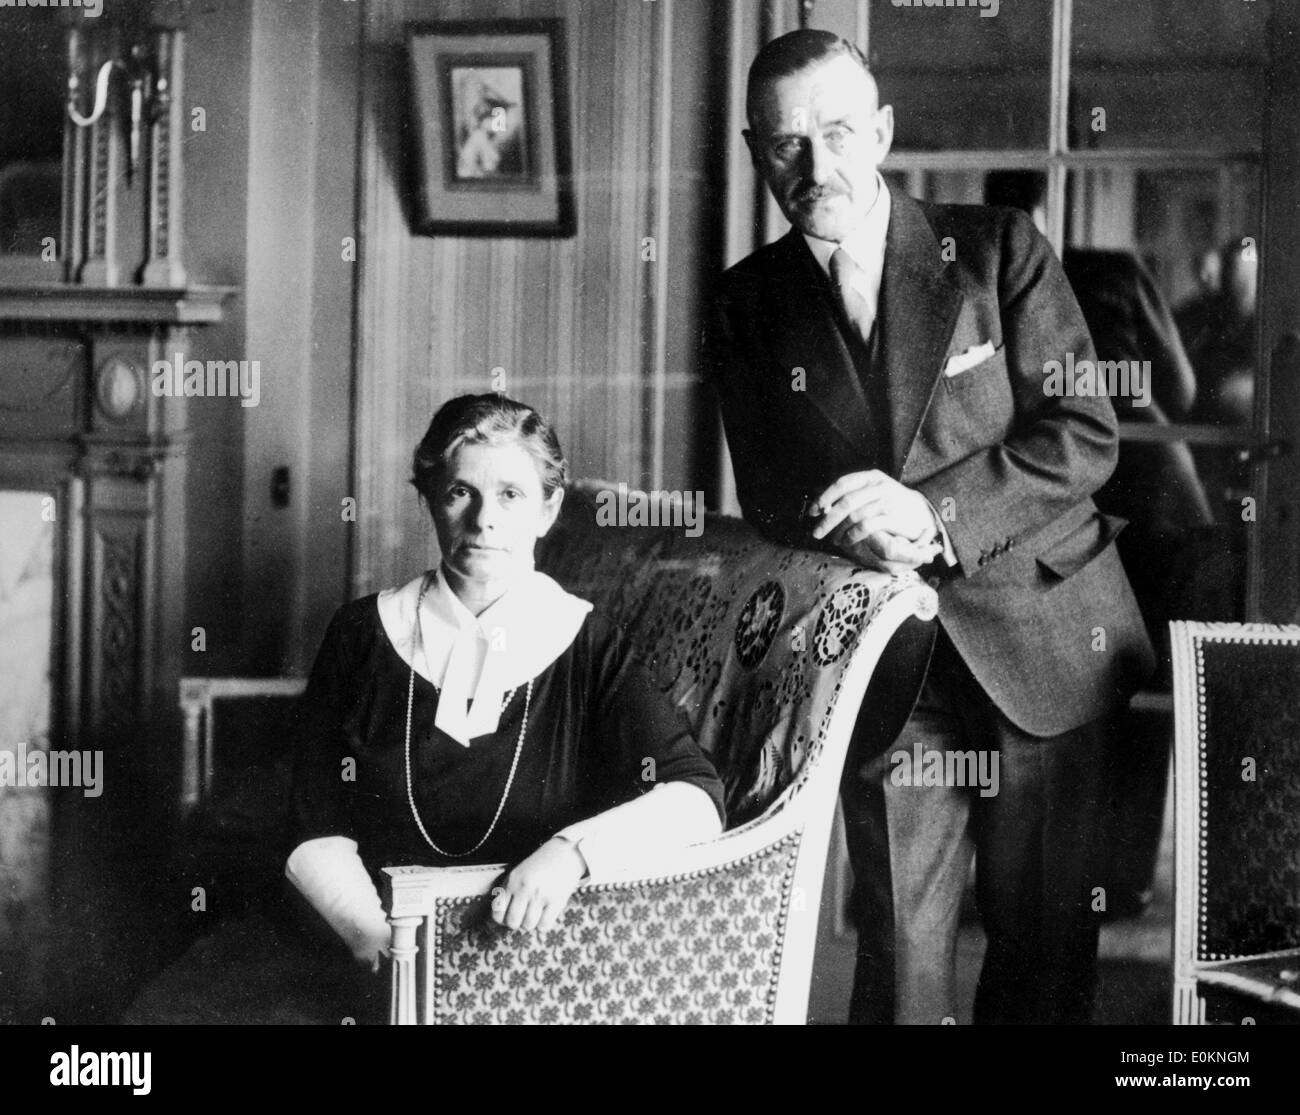 Portrait of Thomas Mann with wife Katja Mann - Stock Image